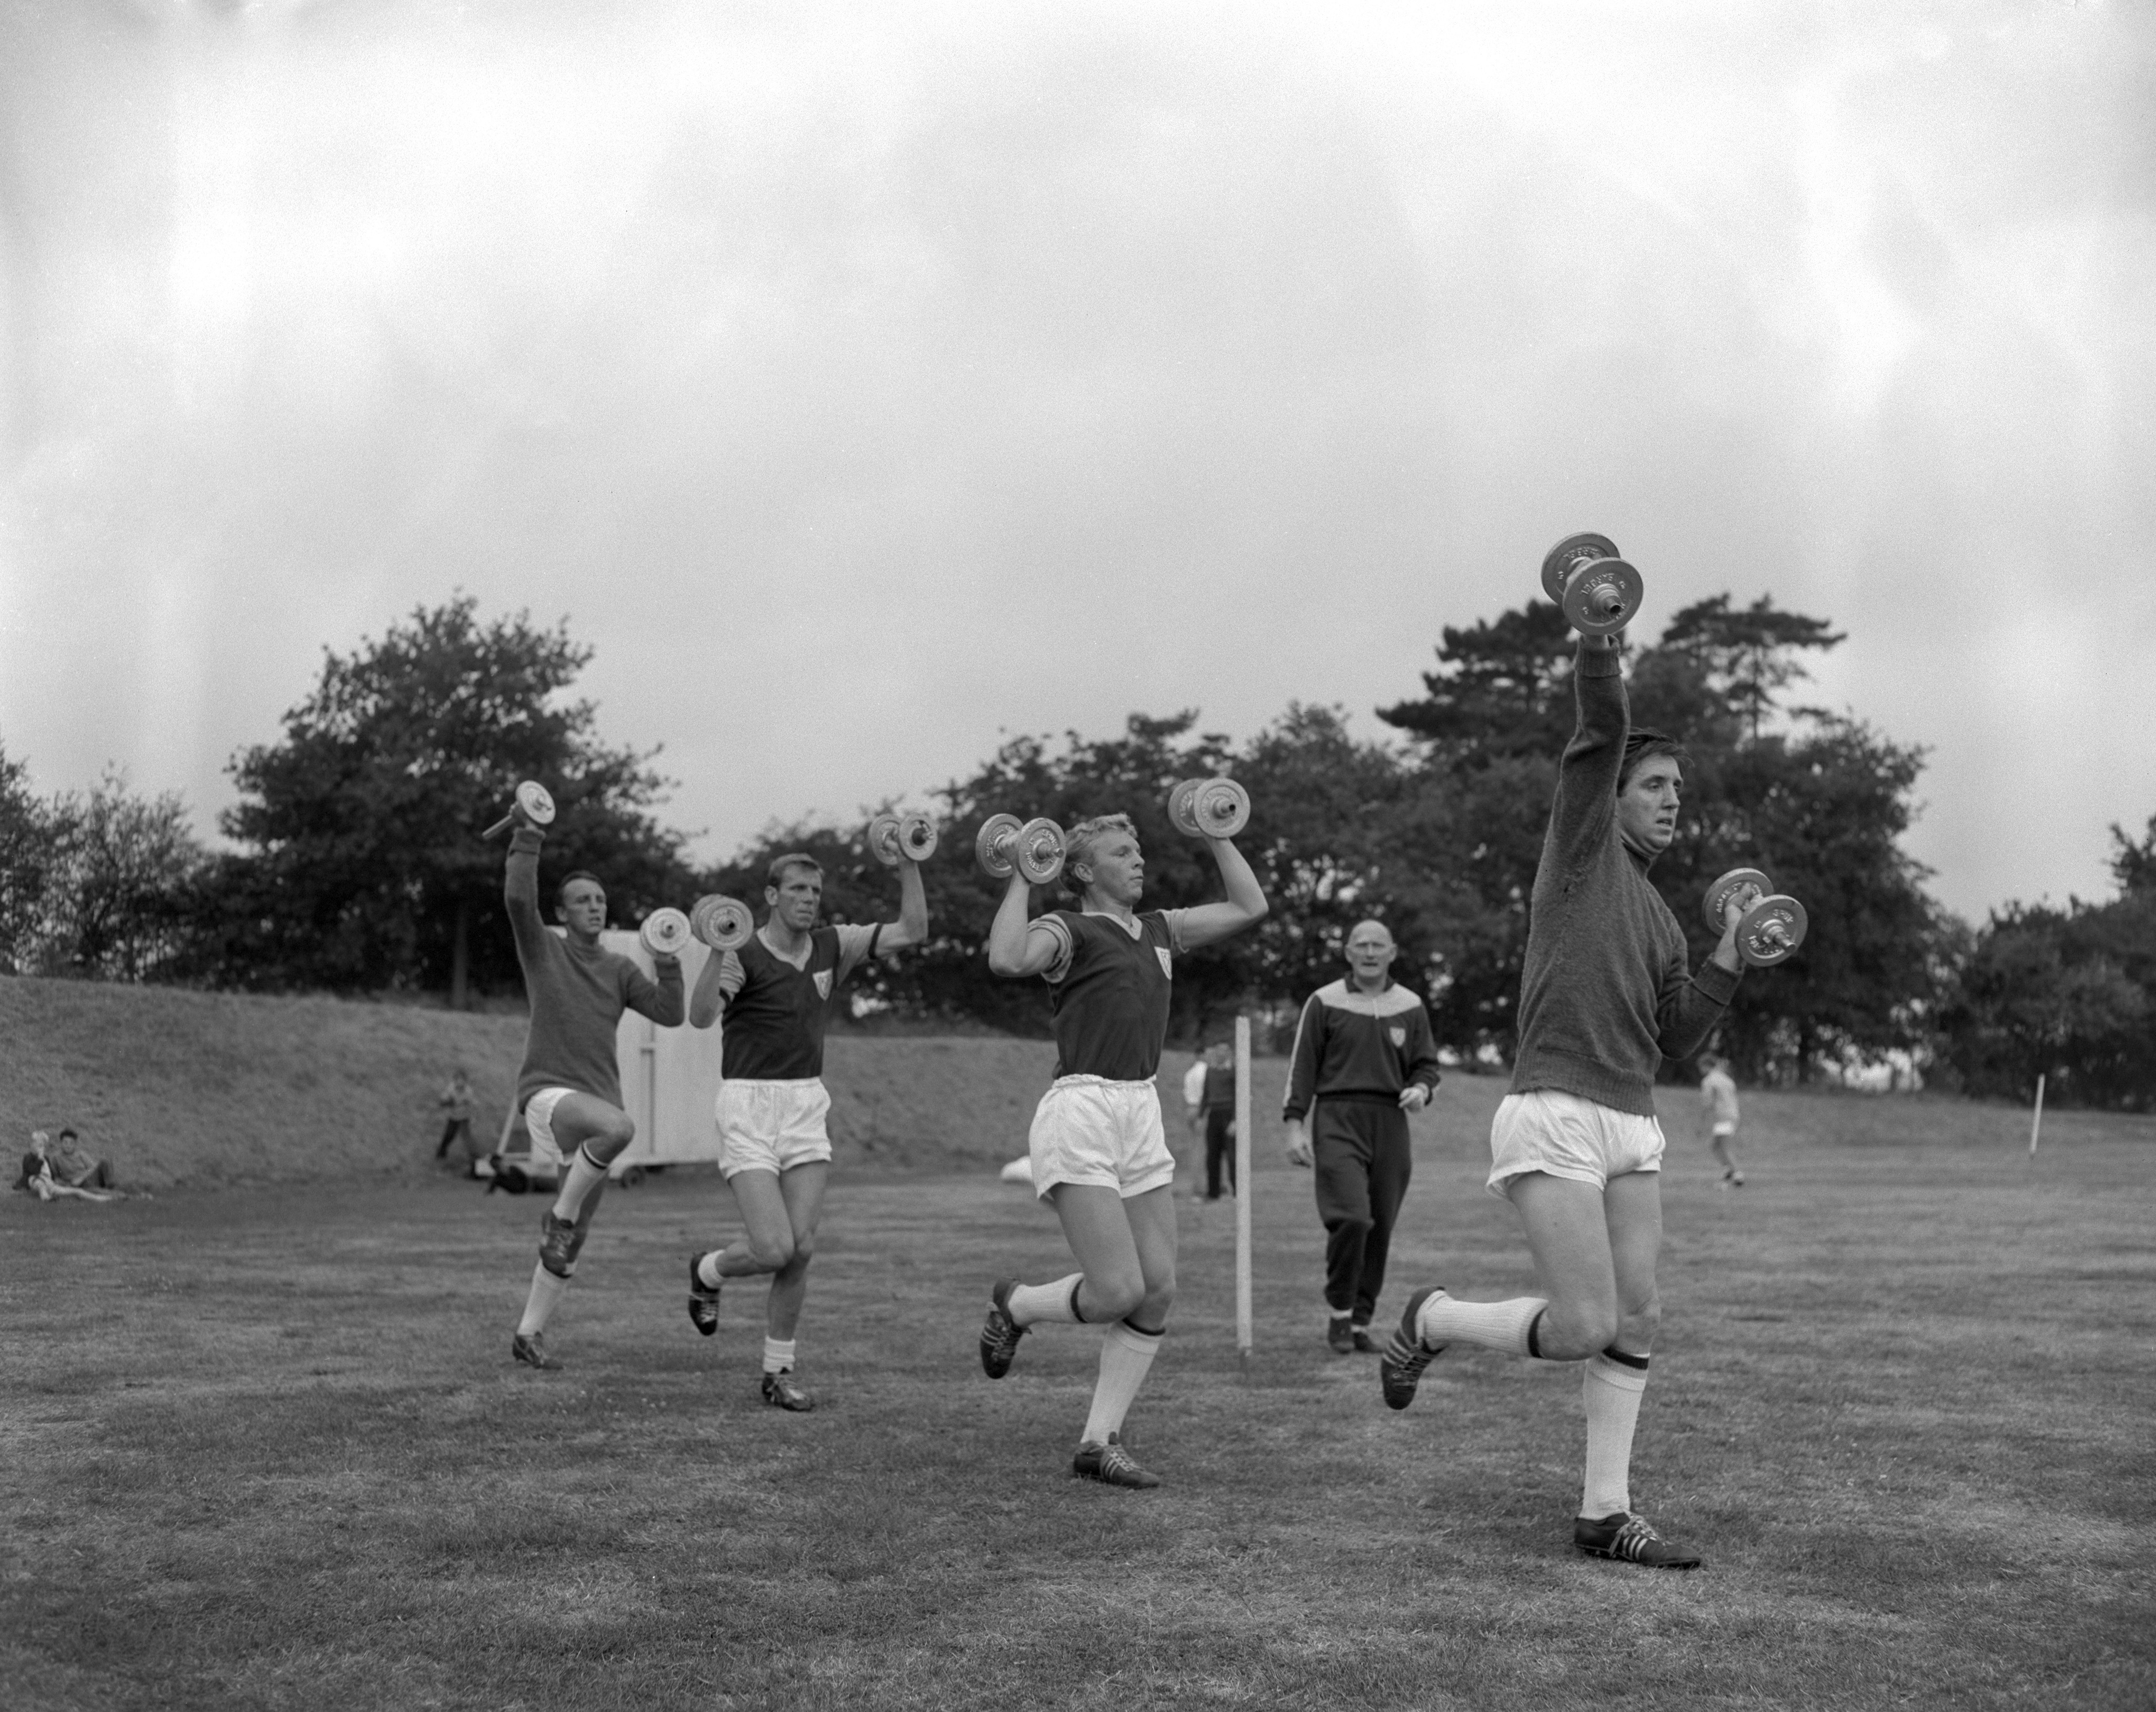 West Ham players, including Bobby Moore (centre), in training in 1959 (PA)